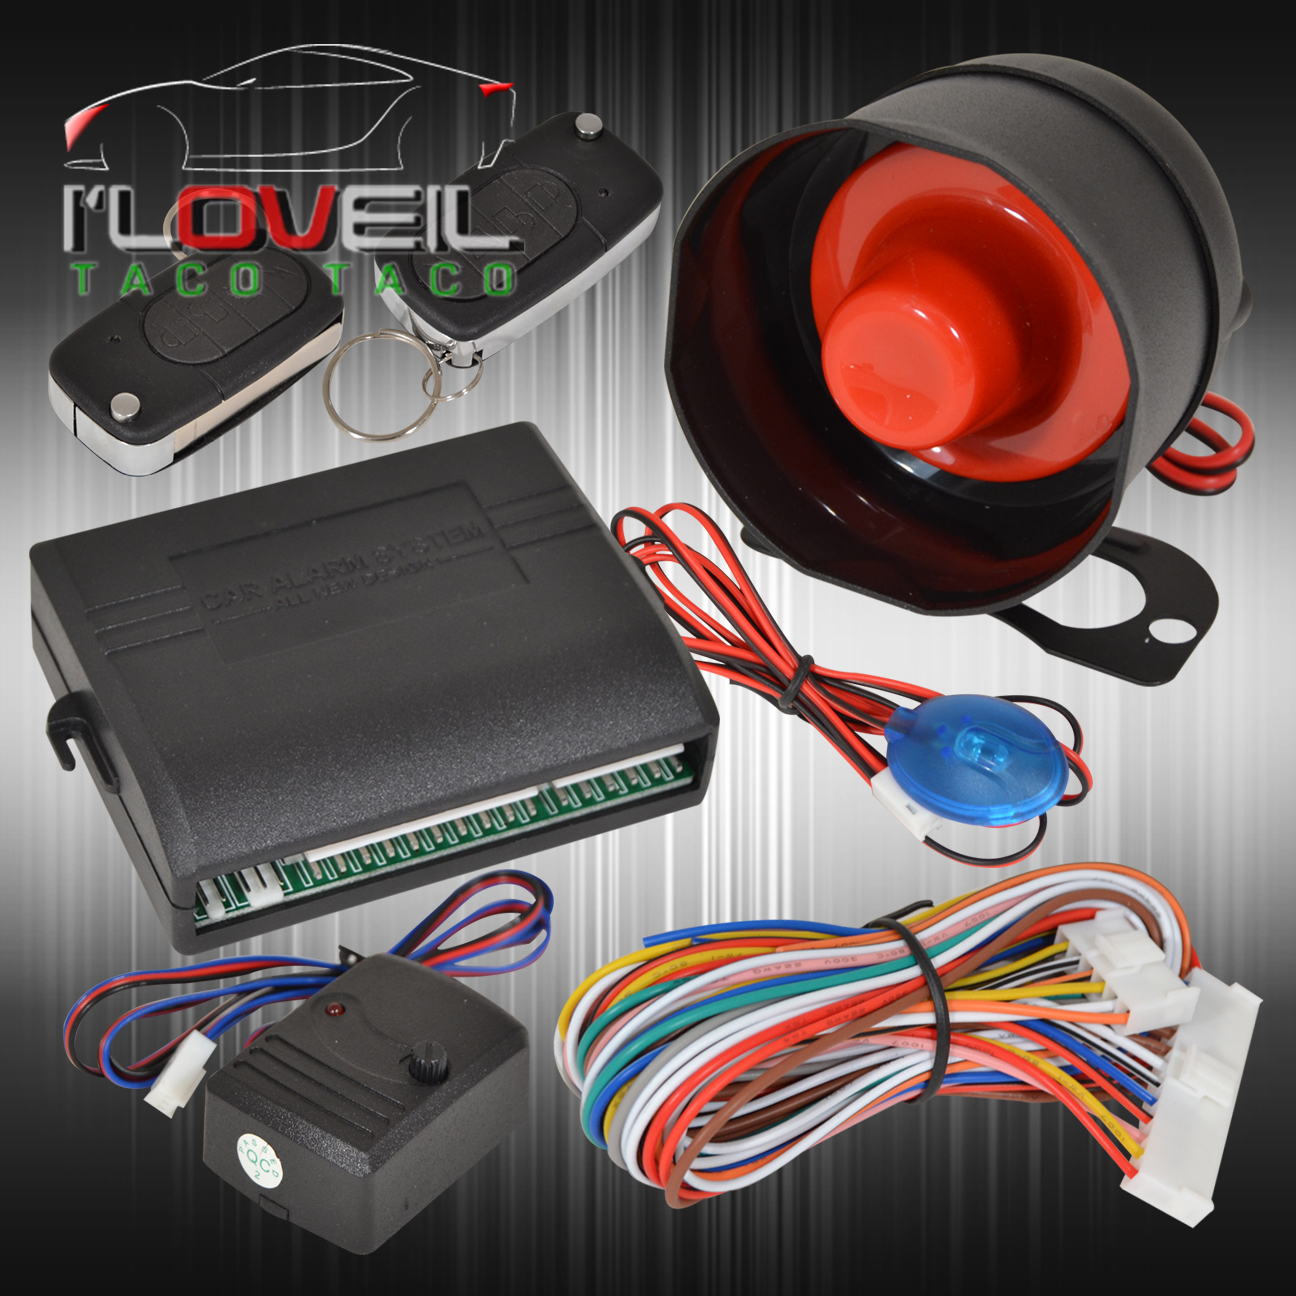 car alarm wiring diagram toyota volleyball 5 1 offense jdm security system remote transmitters with